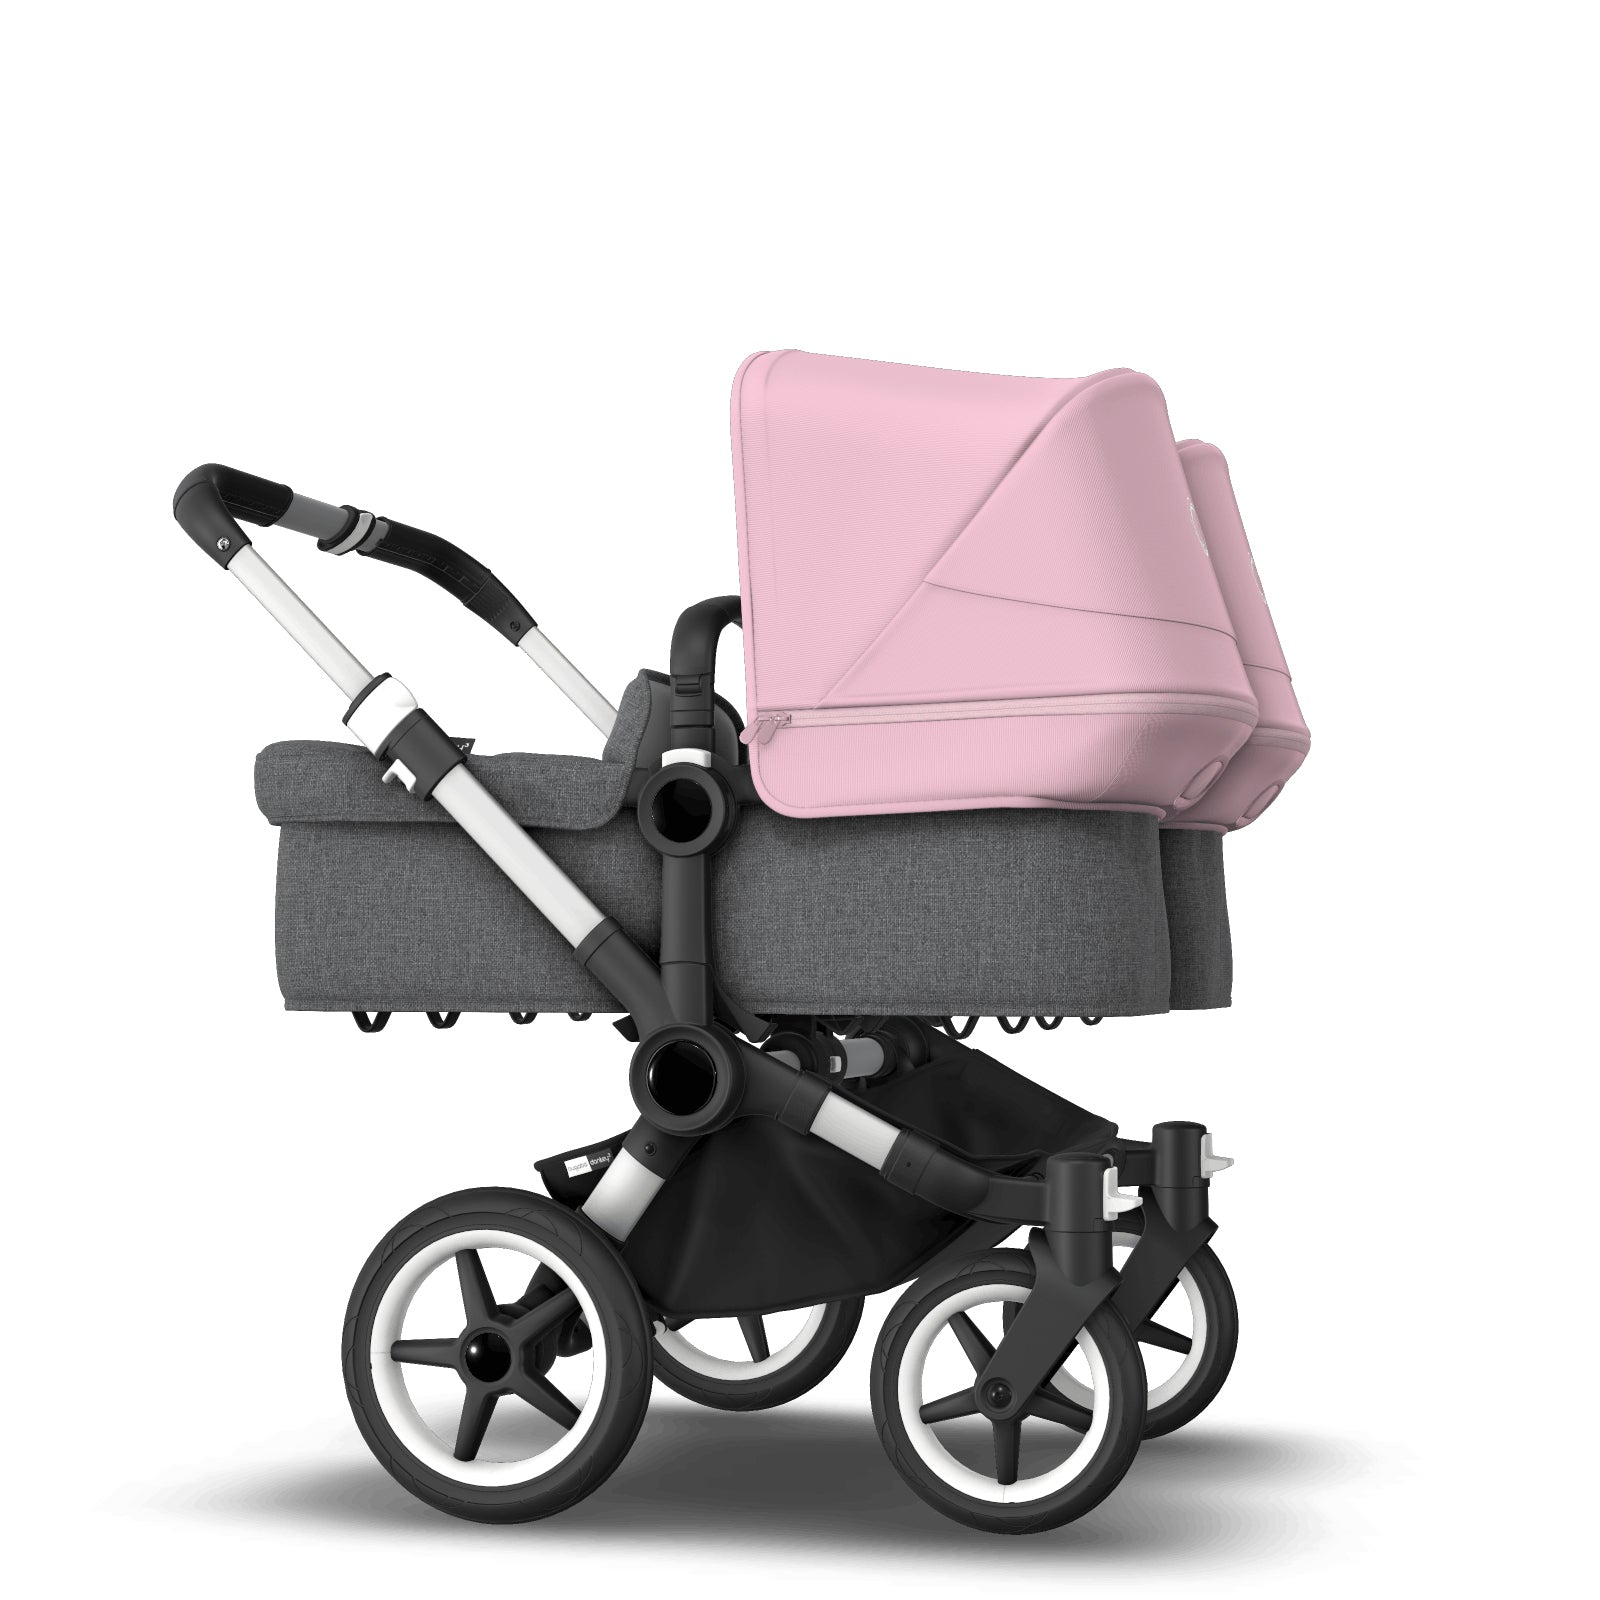 Bugaboo Donkey 3 Twin Seat and Carrycot Pushchair - Soft Pink